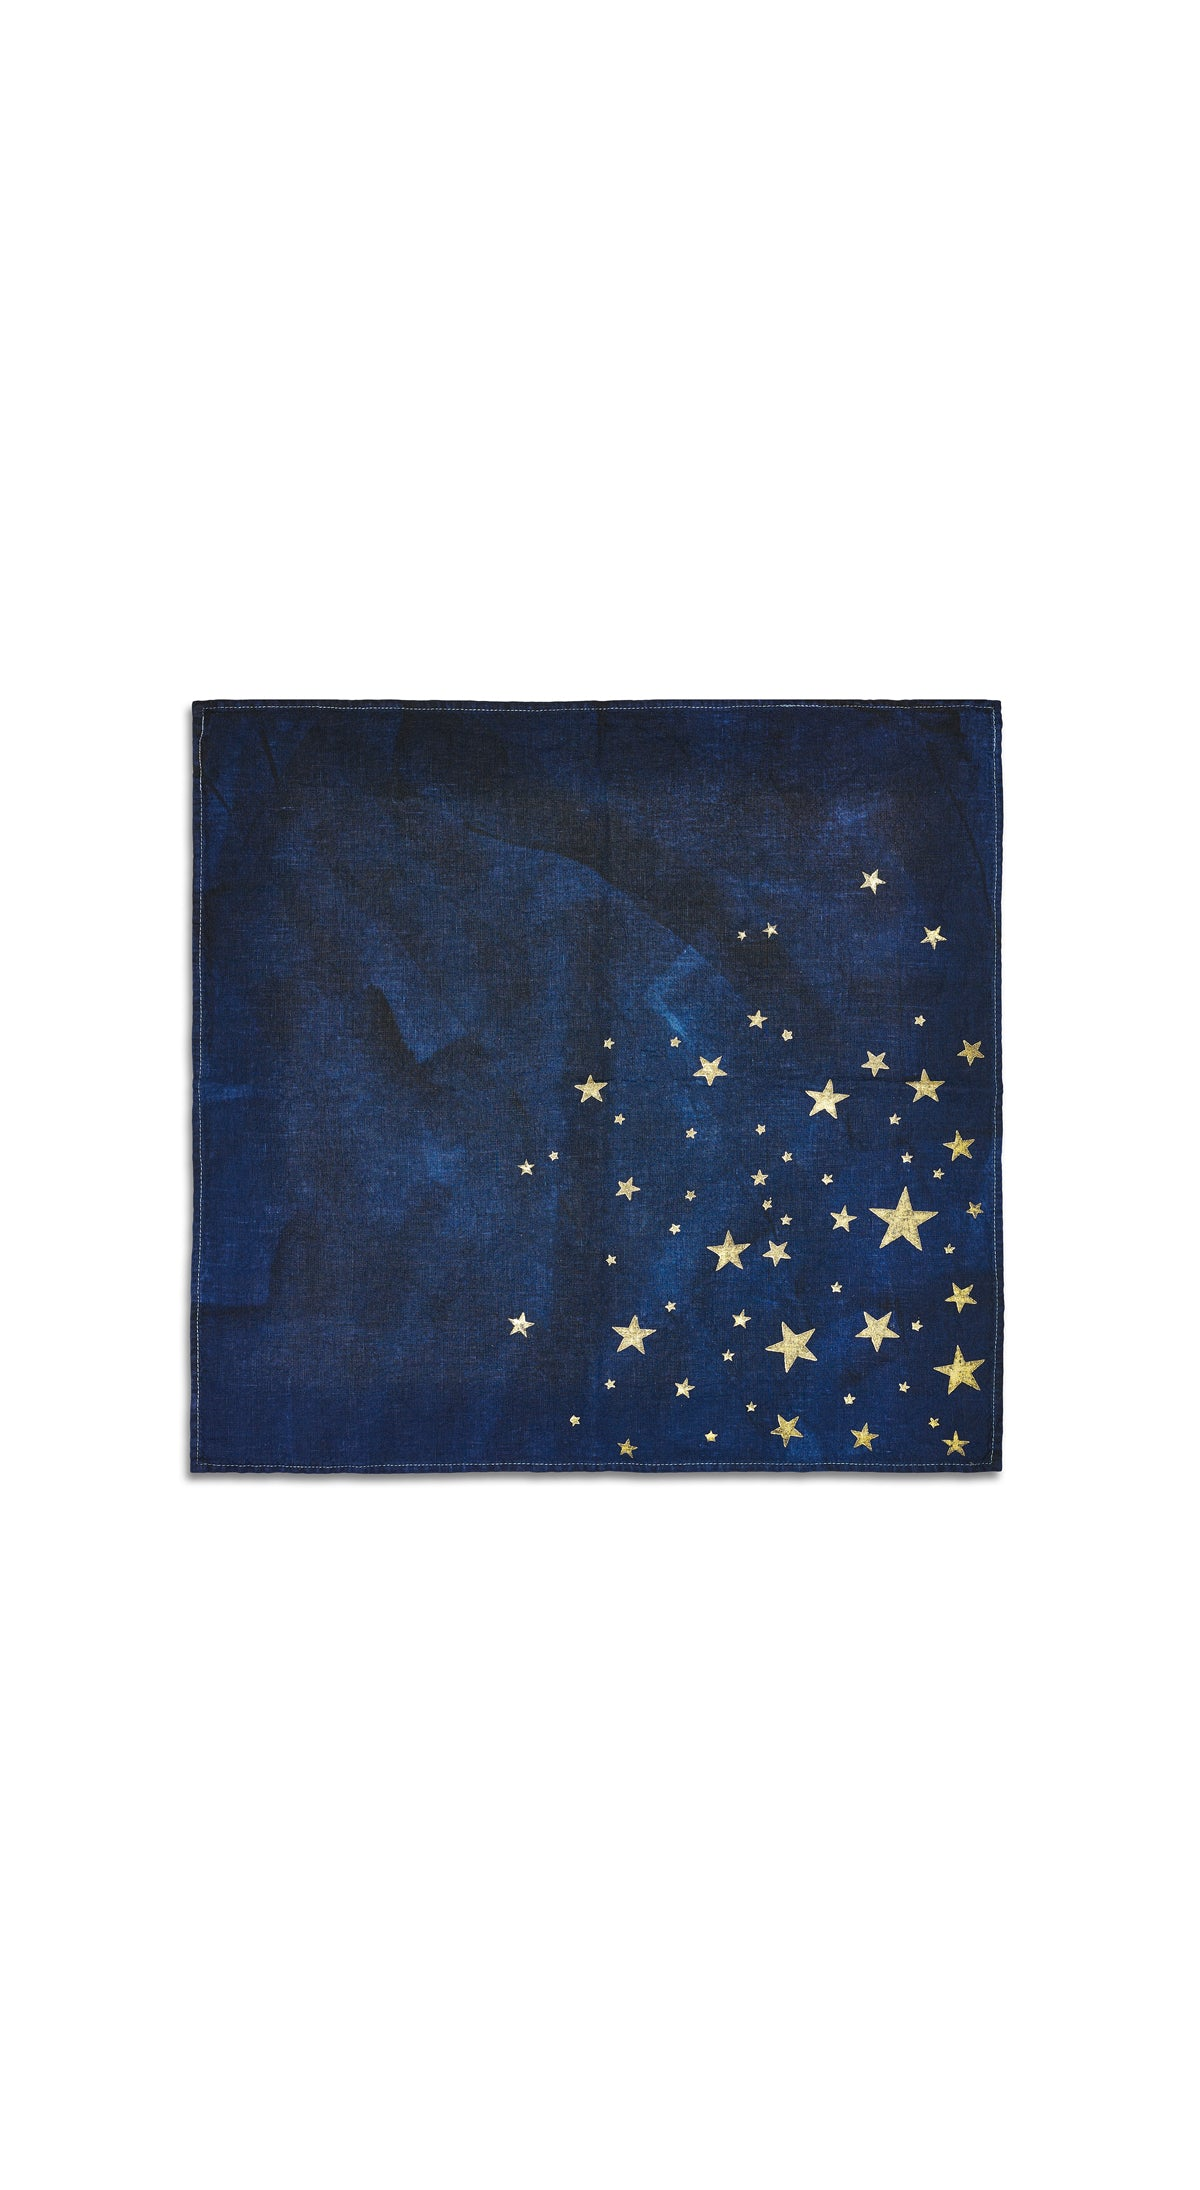 Falling Stars Linen Napkin in Ink Blue with Gold Stars